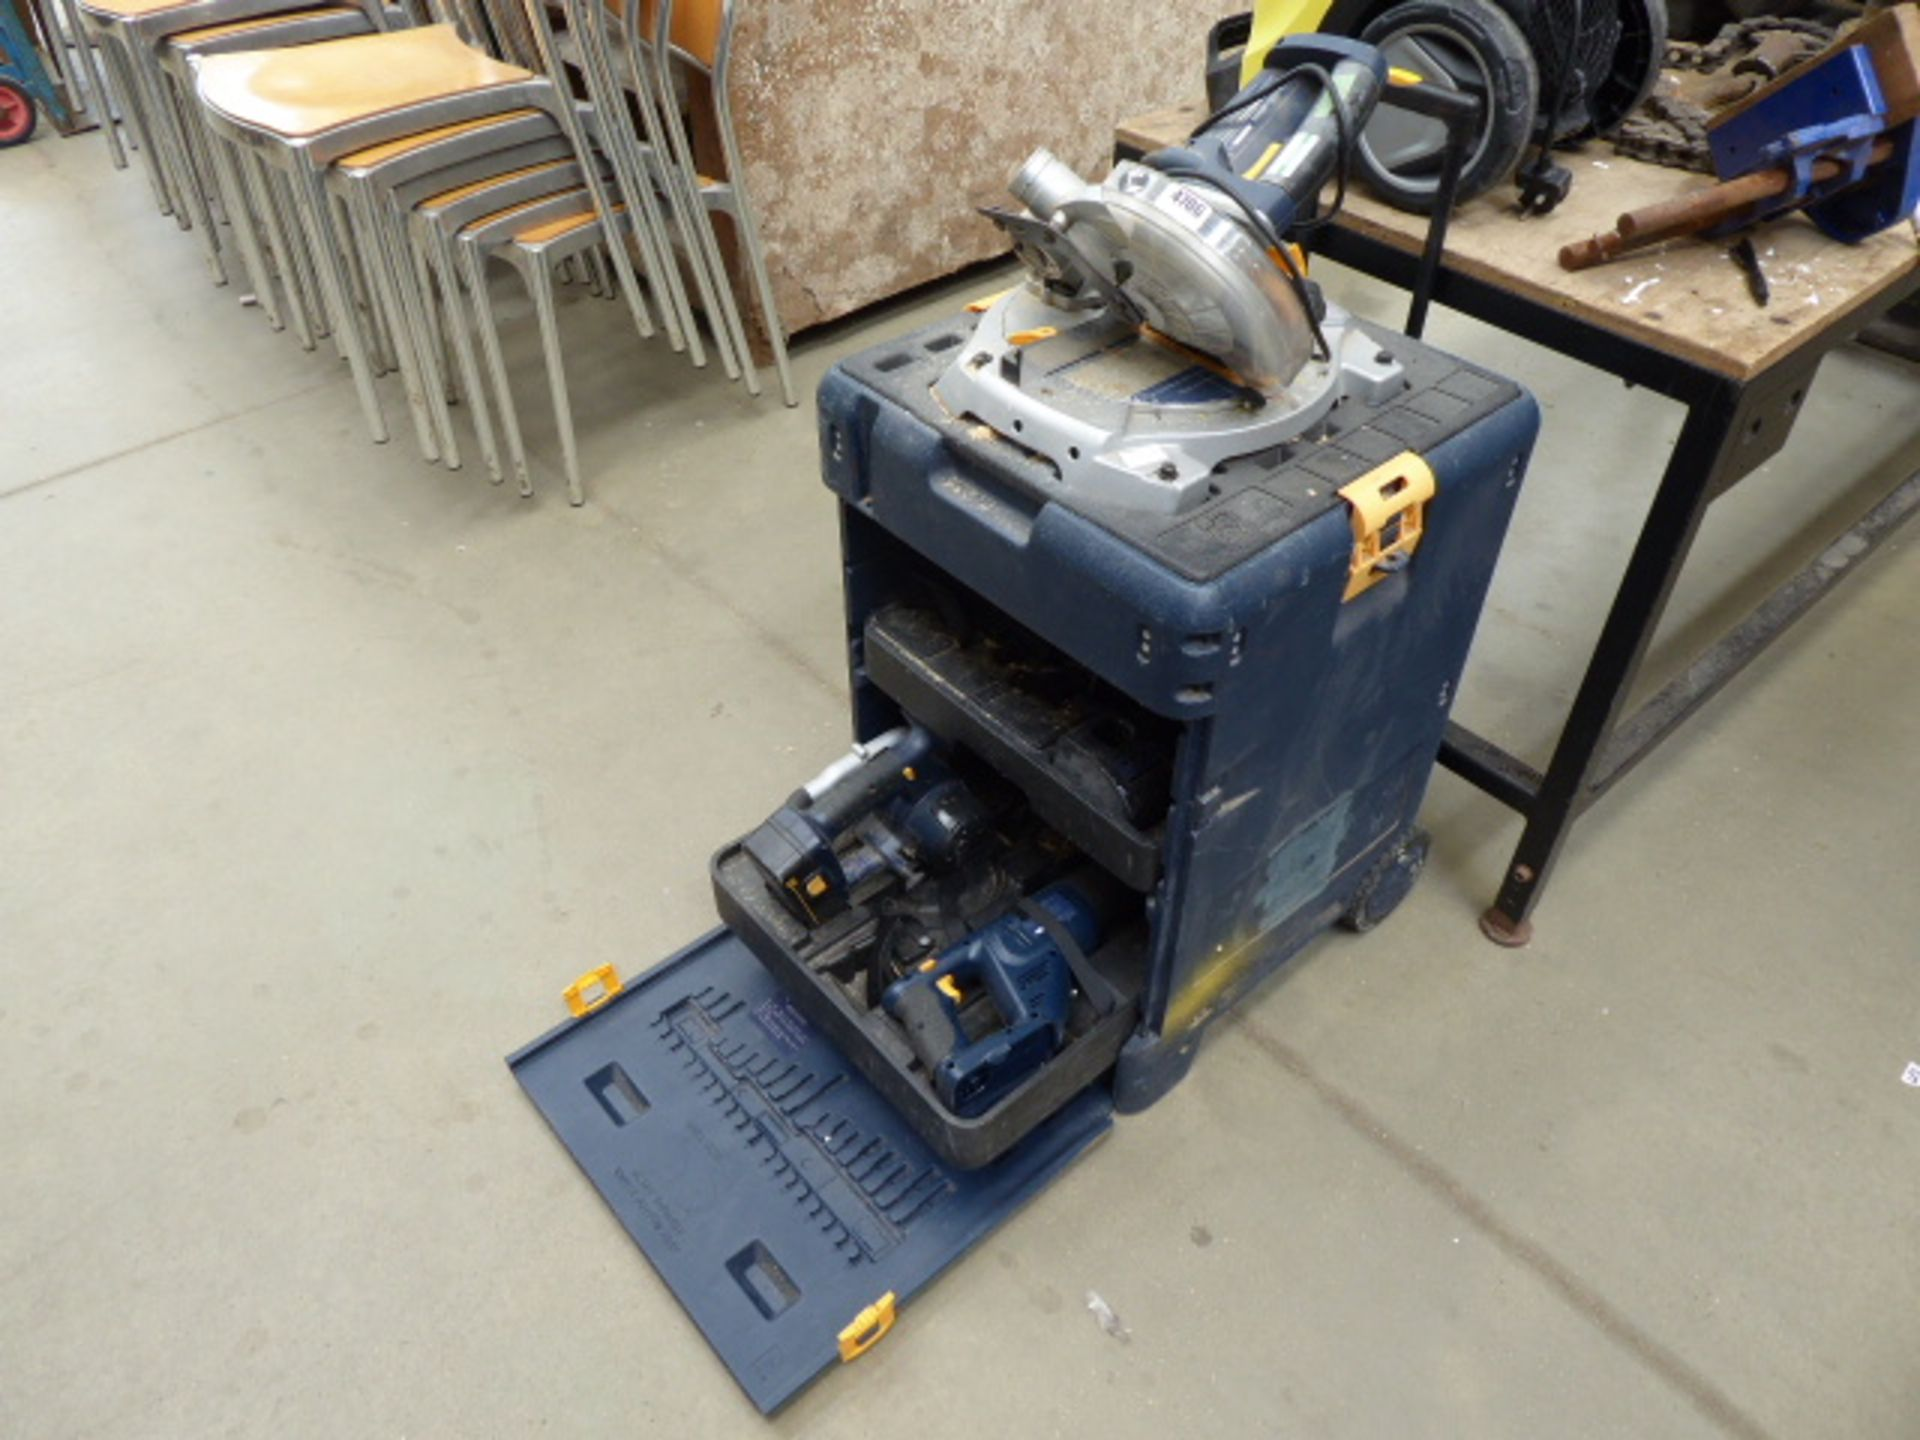 Lot 4706 - Ryobi compound mitre saw complete with jigsaw, battery drill, reciprocating saw, circular saw, one